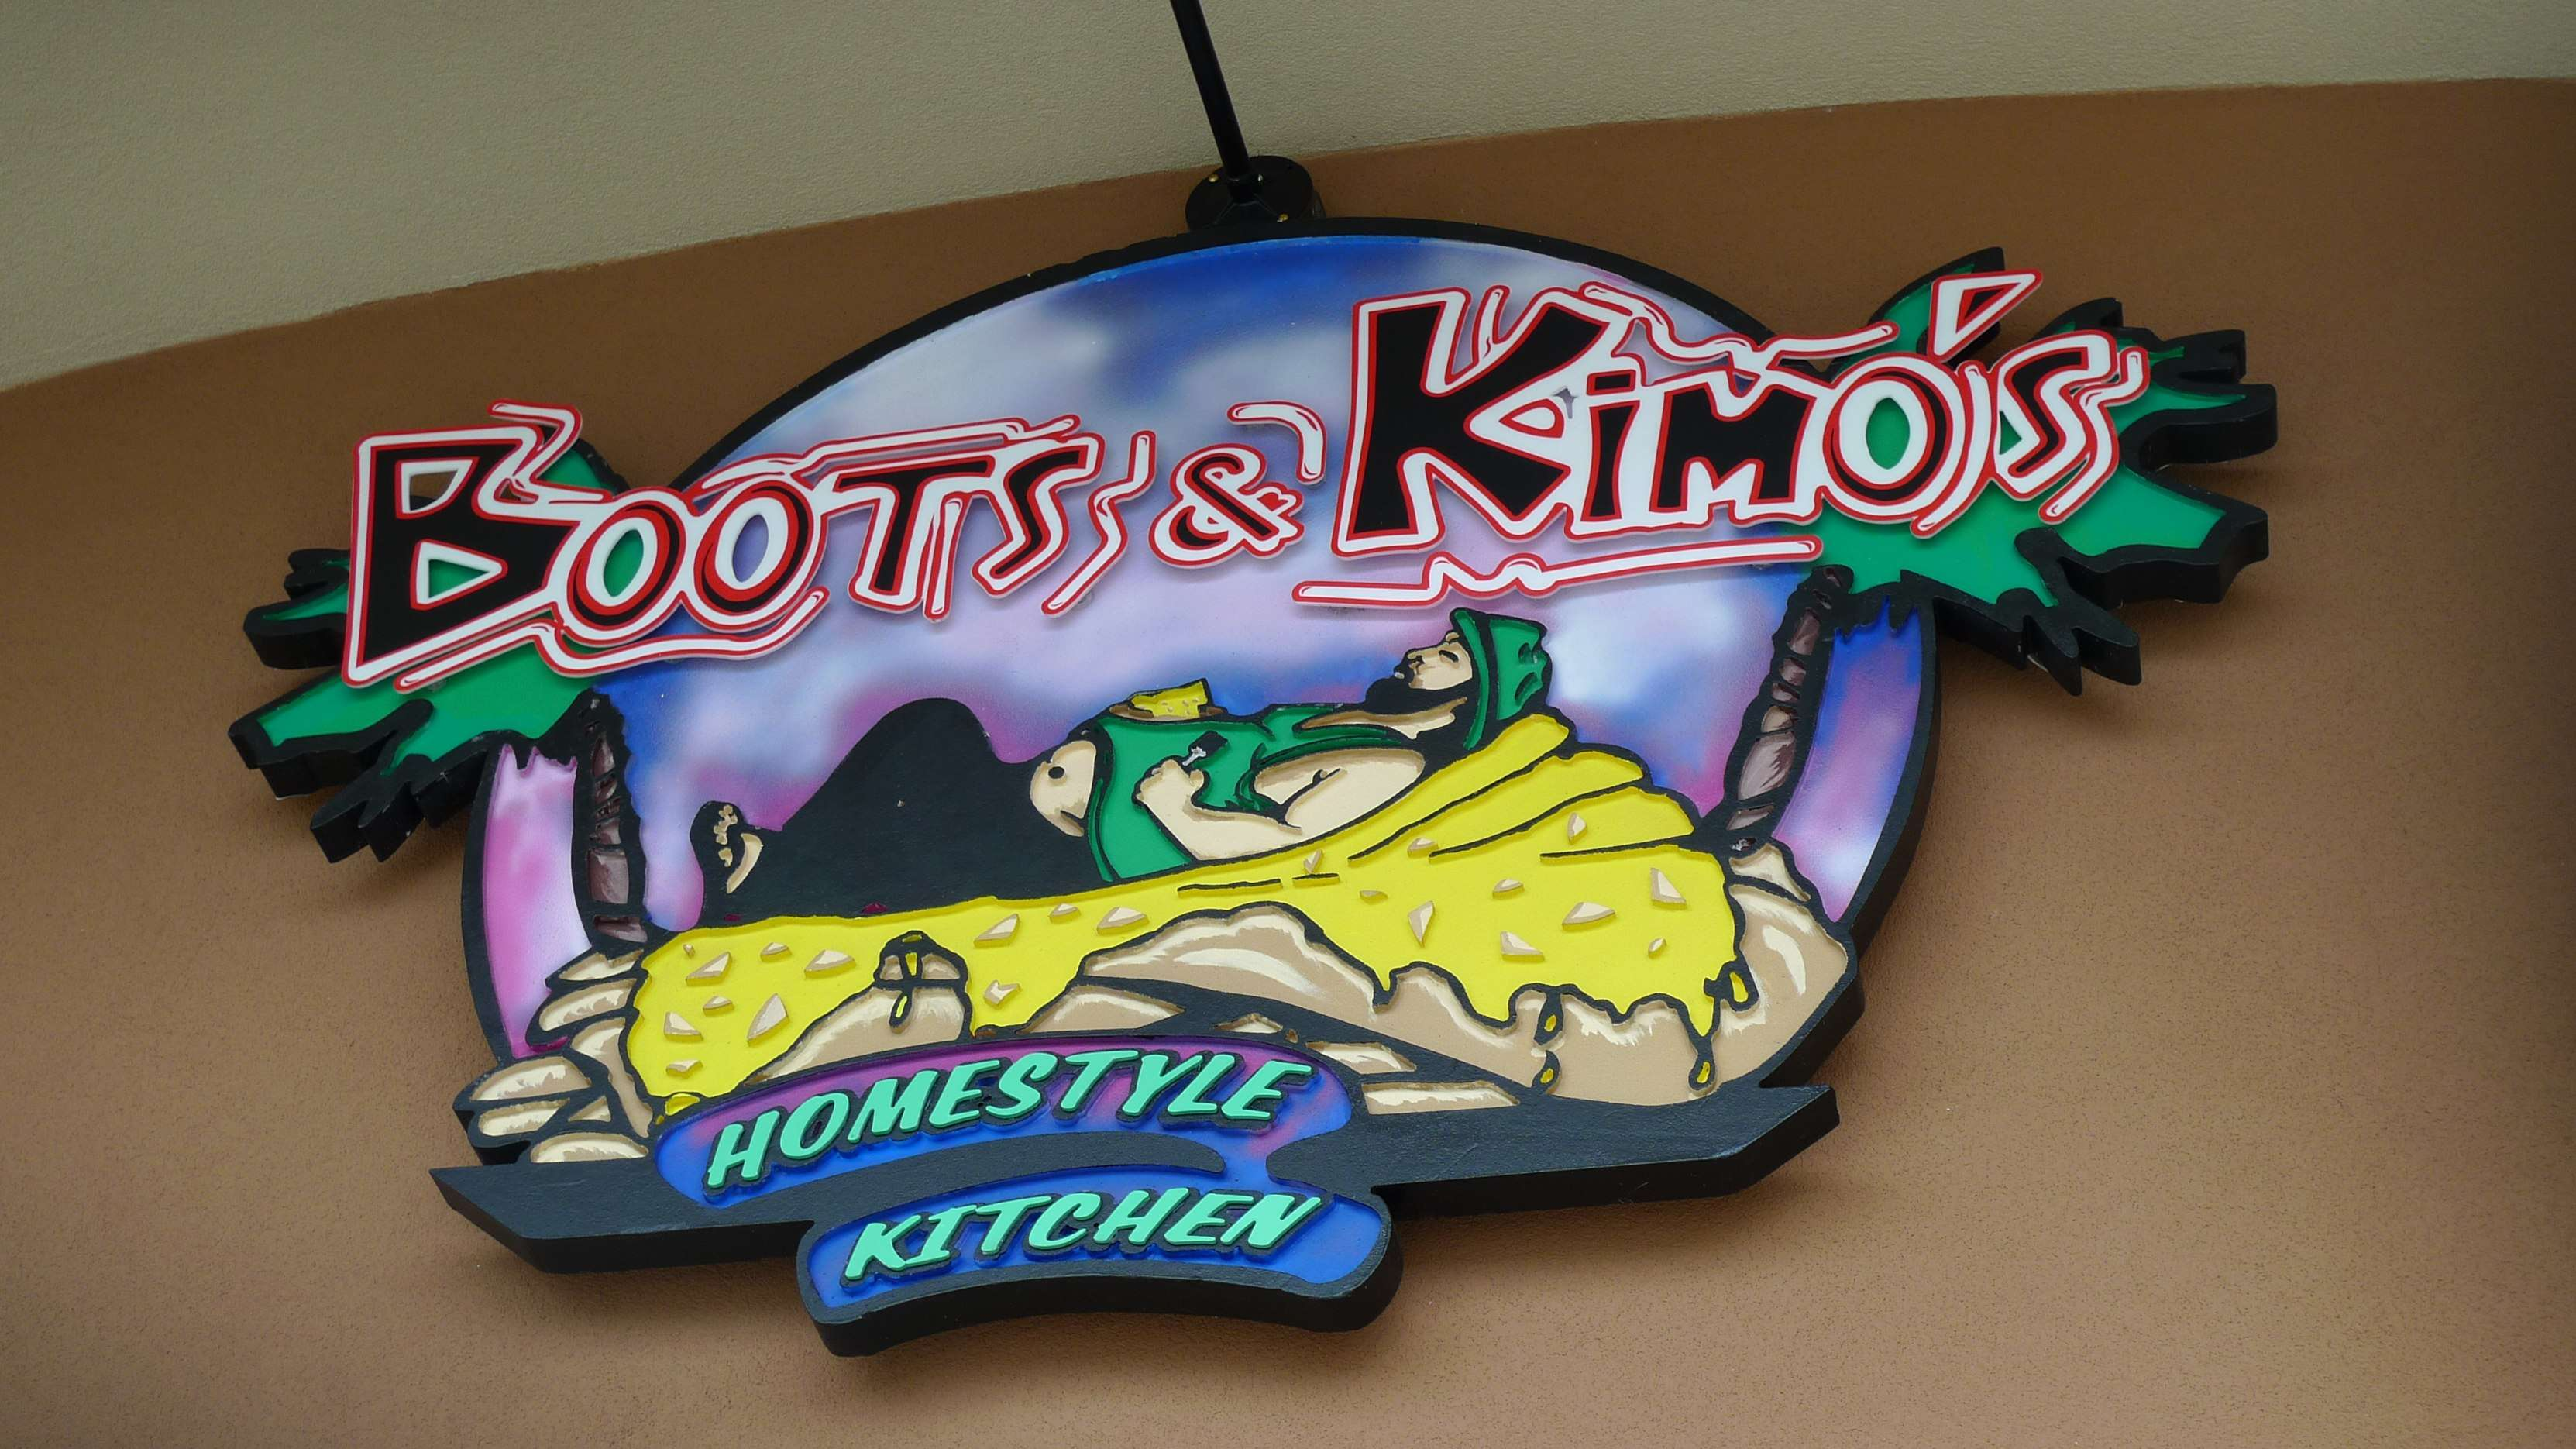 Boots and Kimo's Homestyle Kitchen